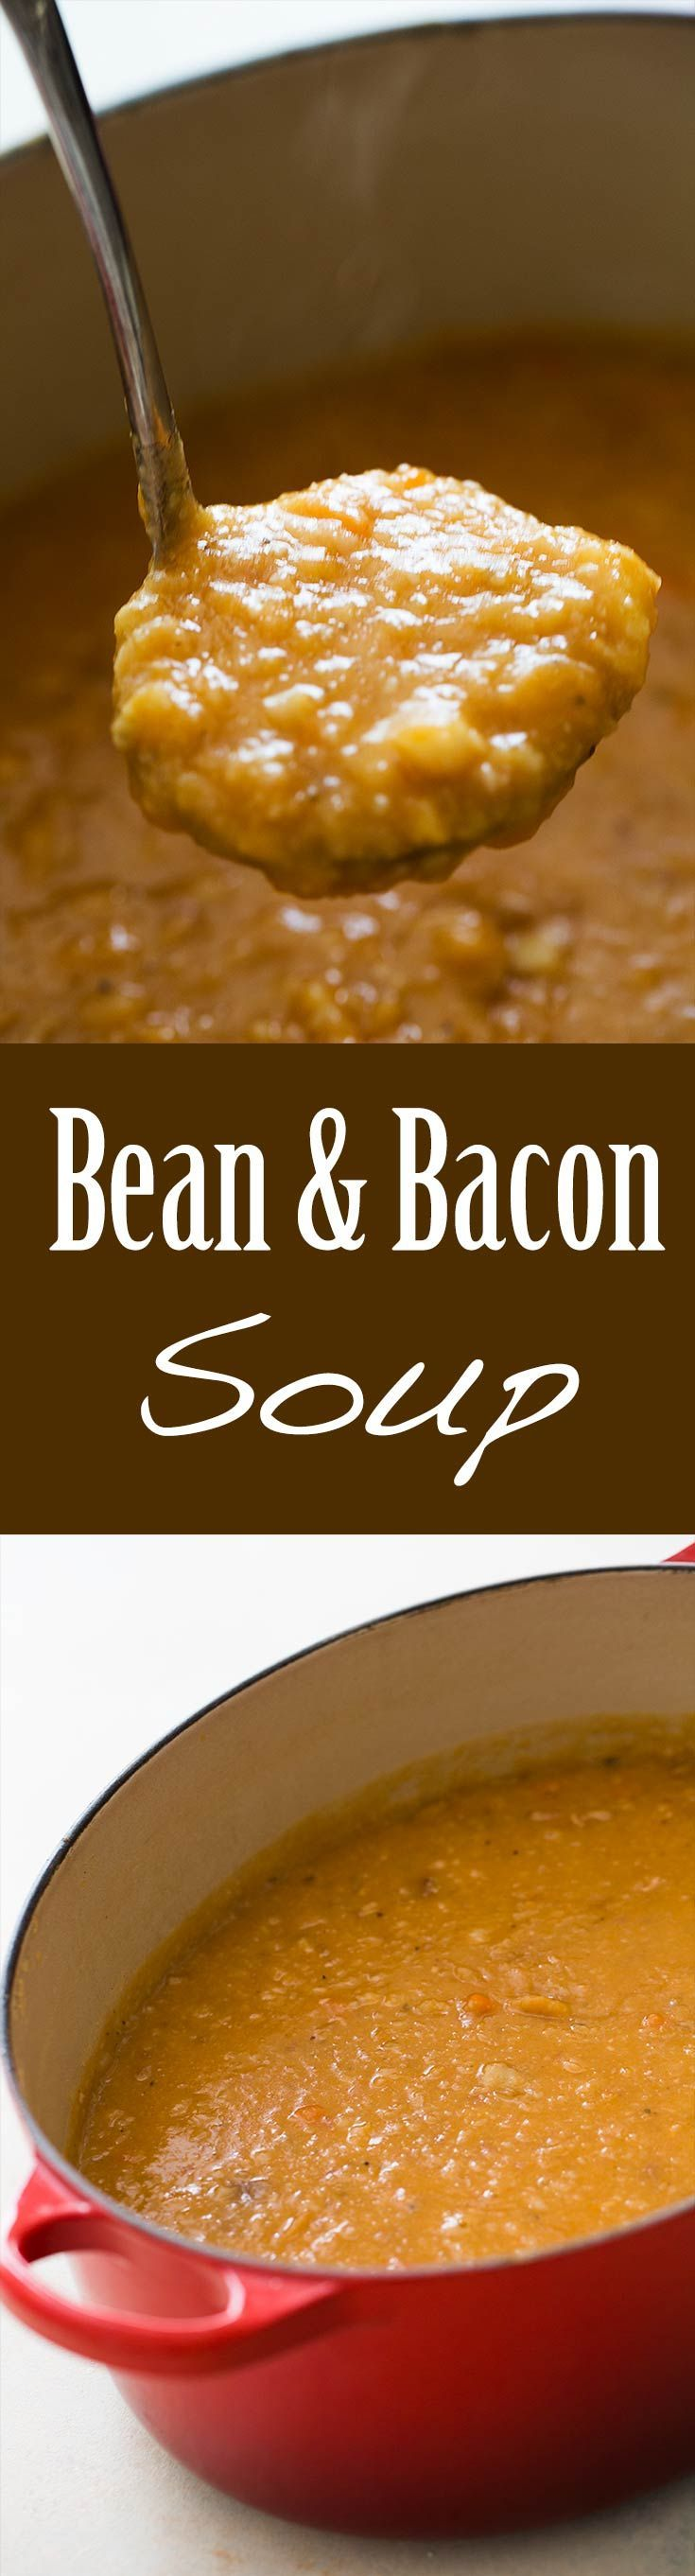 than bean and bacon soup? Best comfort soup ever! Bean and bacon soup ...